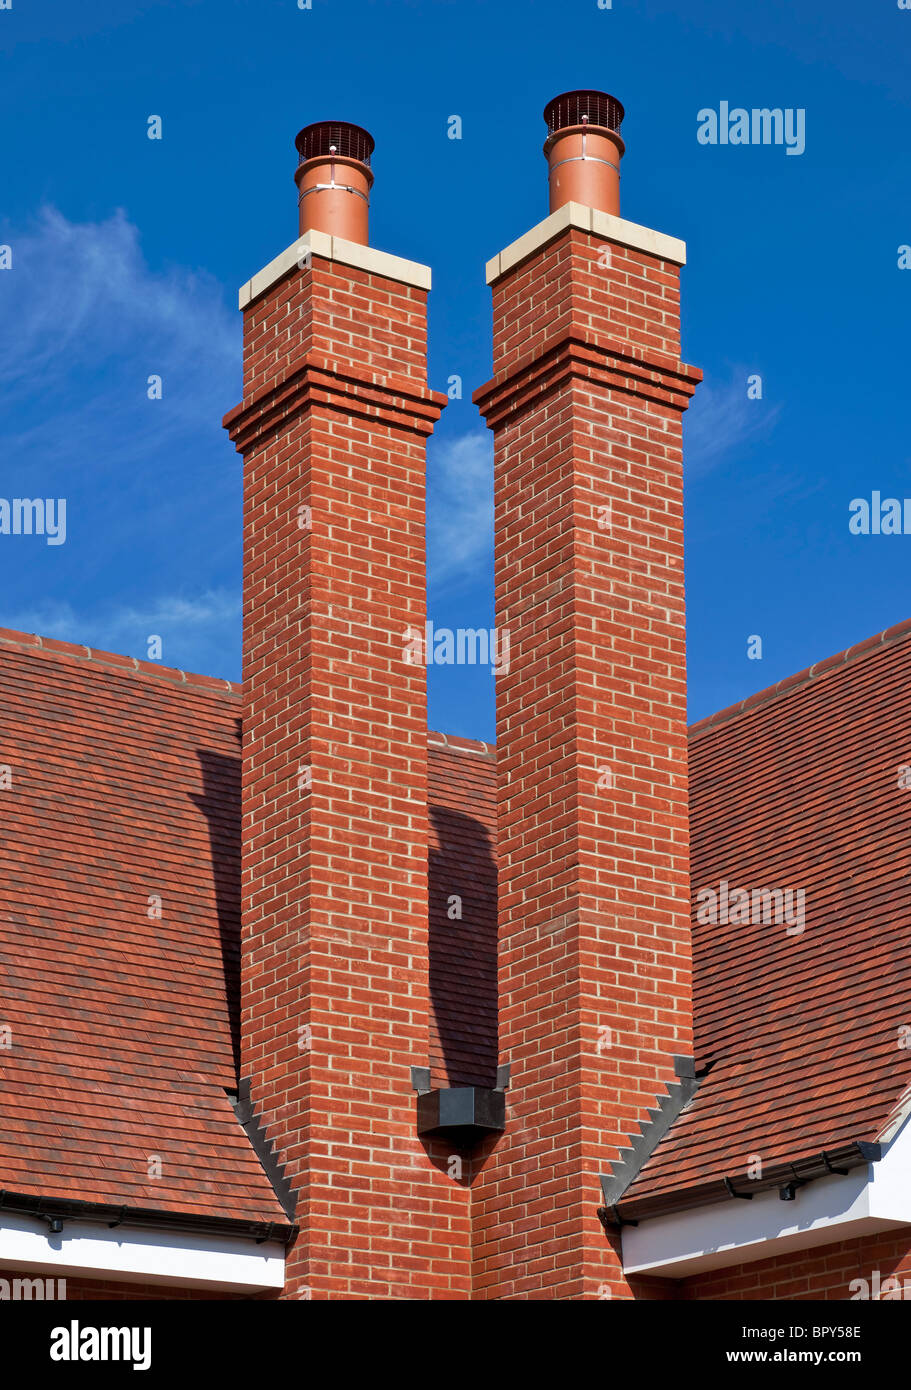 Double chimney on a house in Chigwell, Essex. - Stock Image